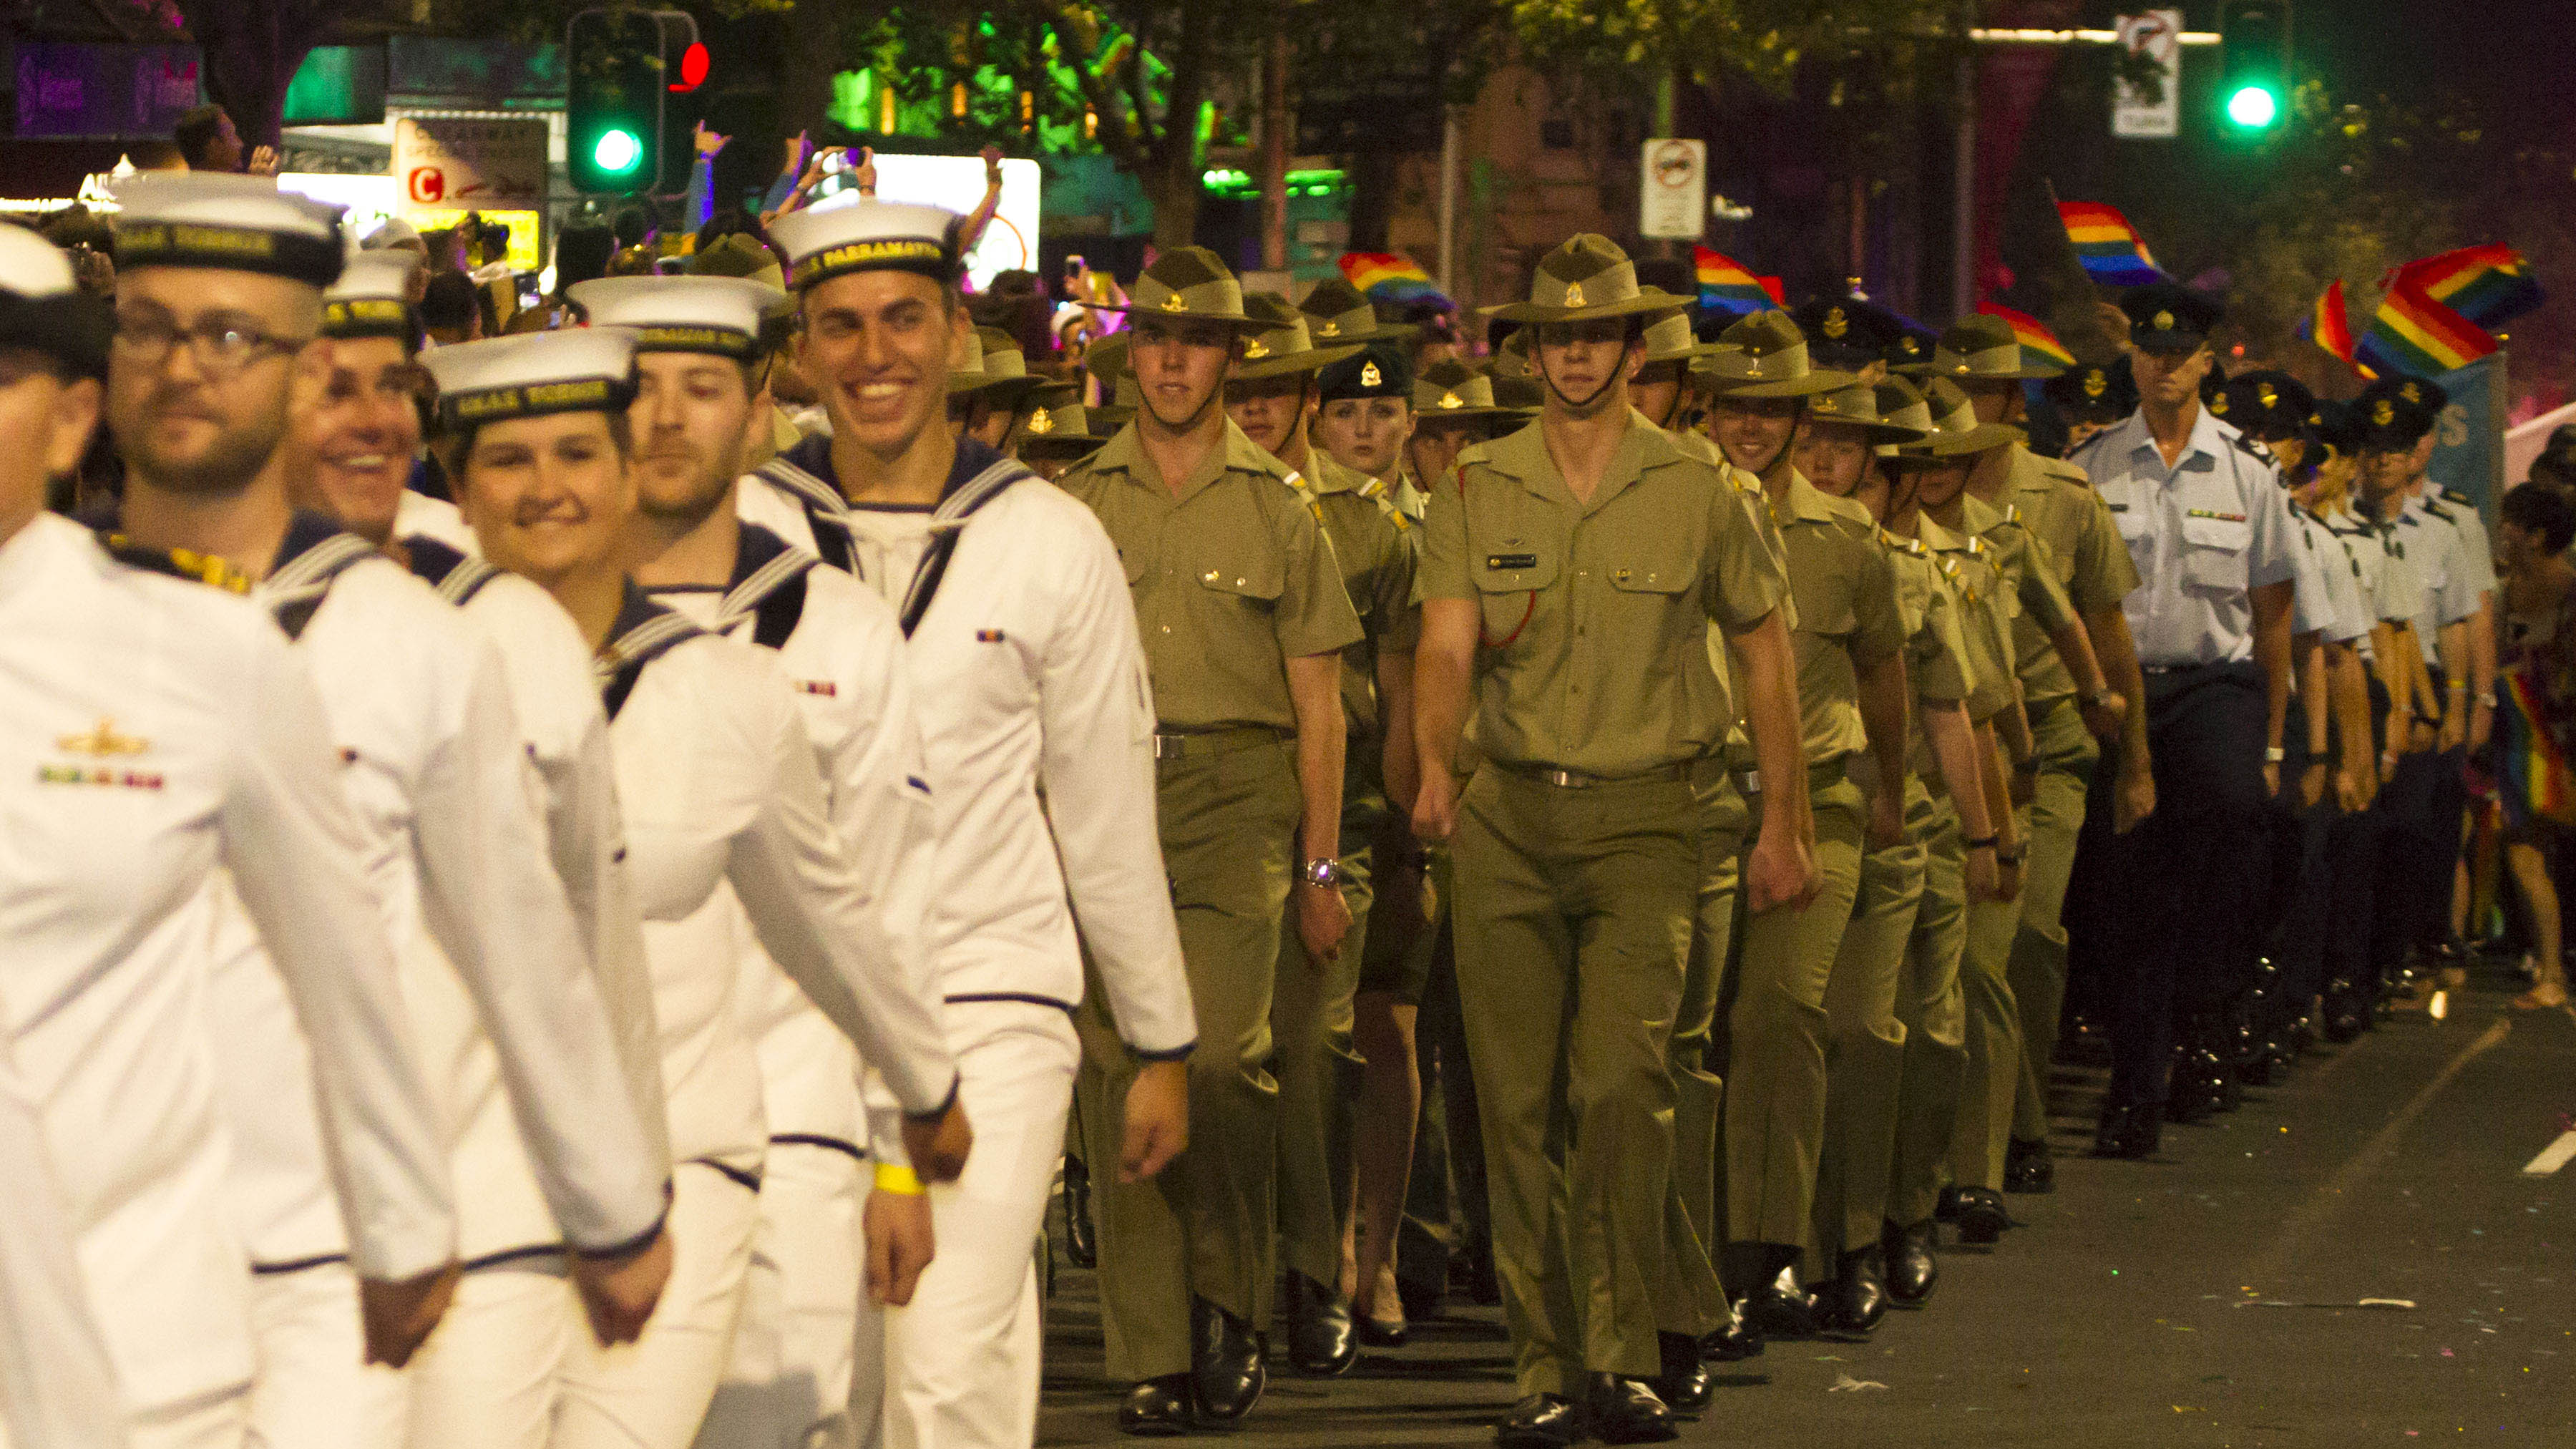 Should the ADF be able to march in uniform?